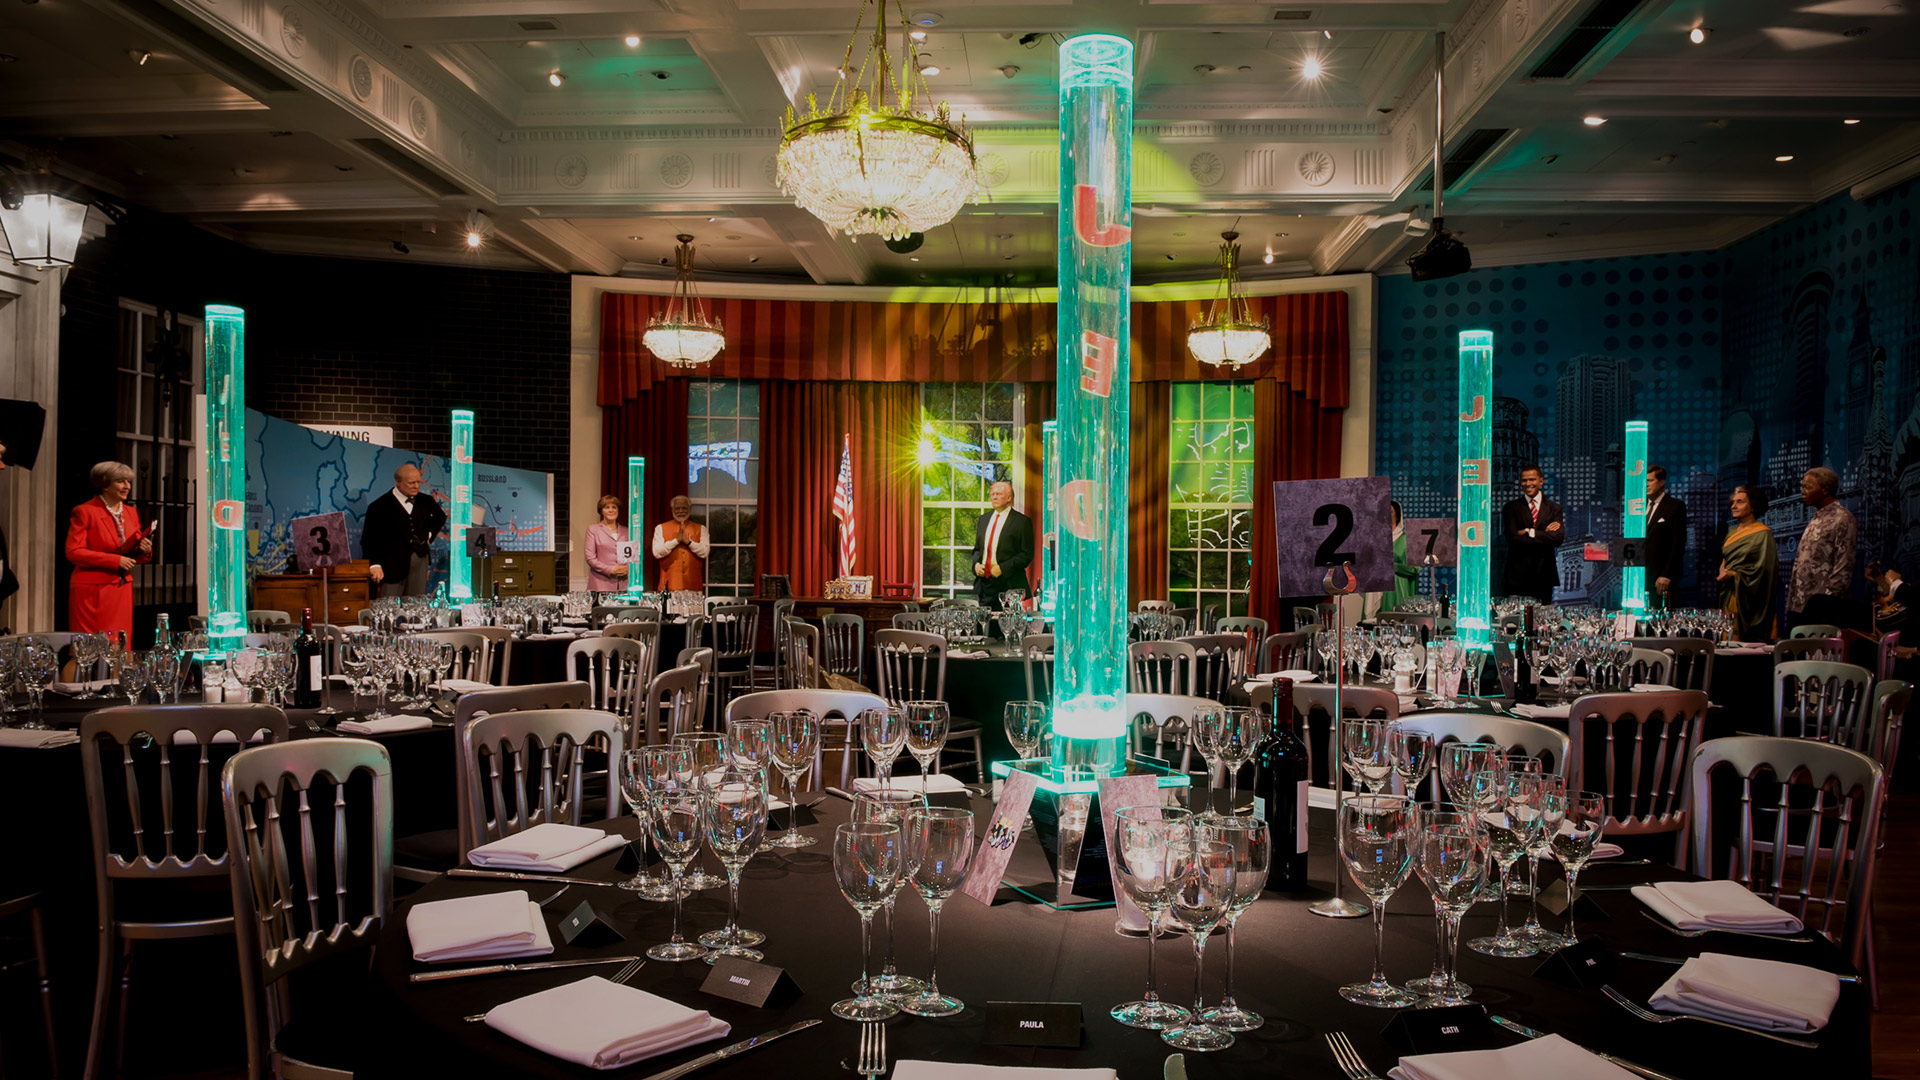 Corporate events at Madame Tussauds